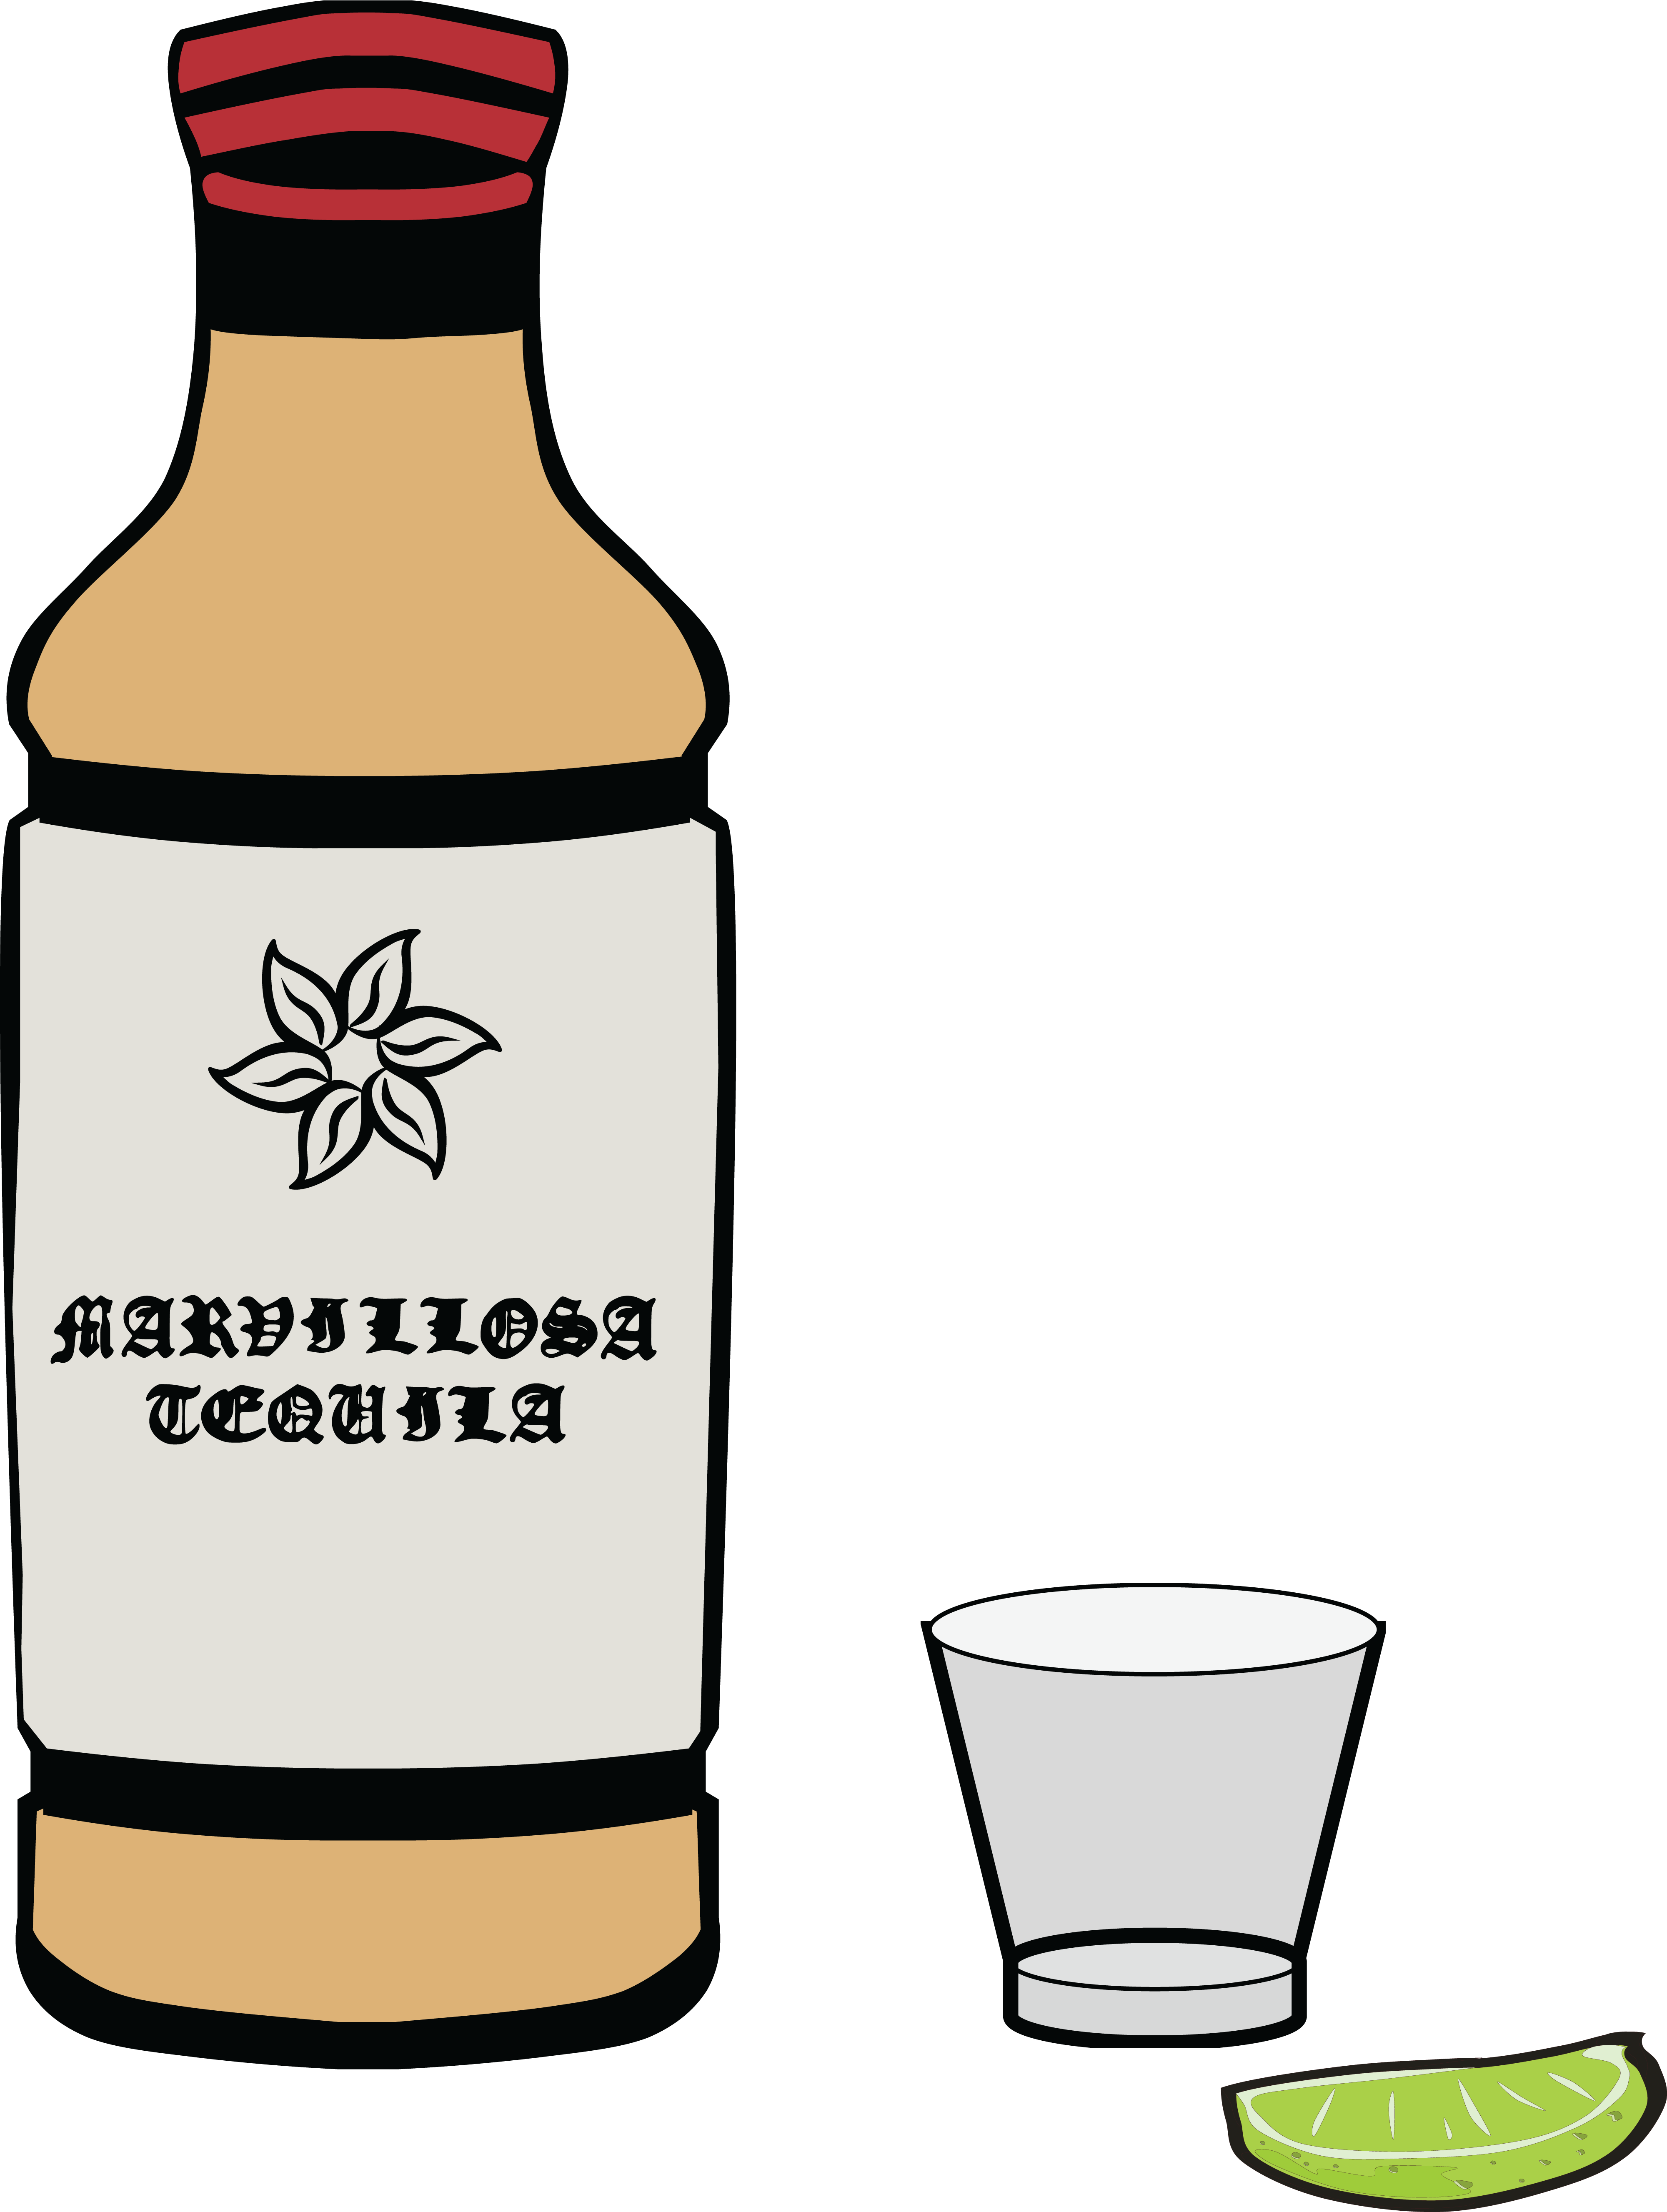 Tequila Clipart.